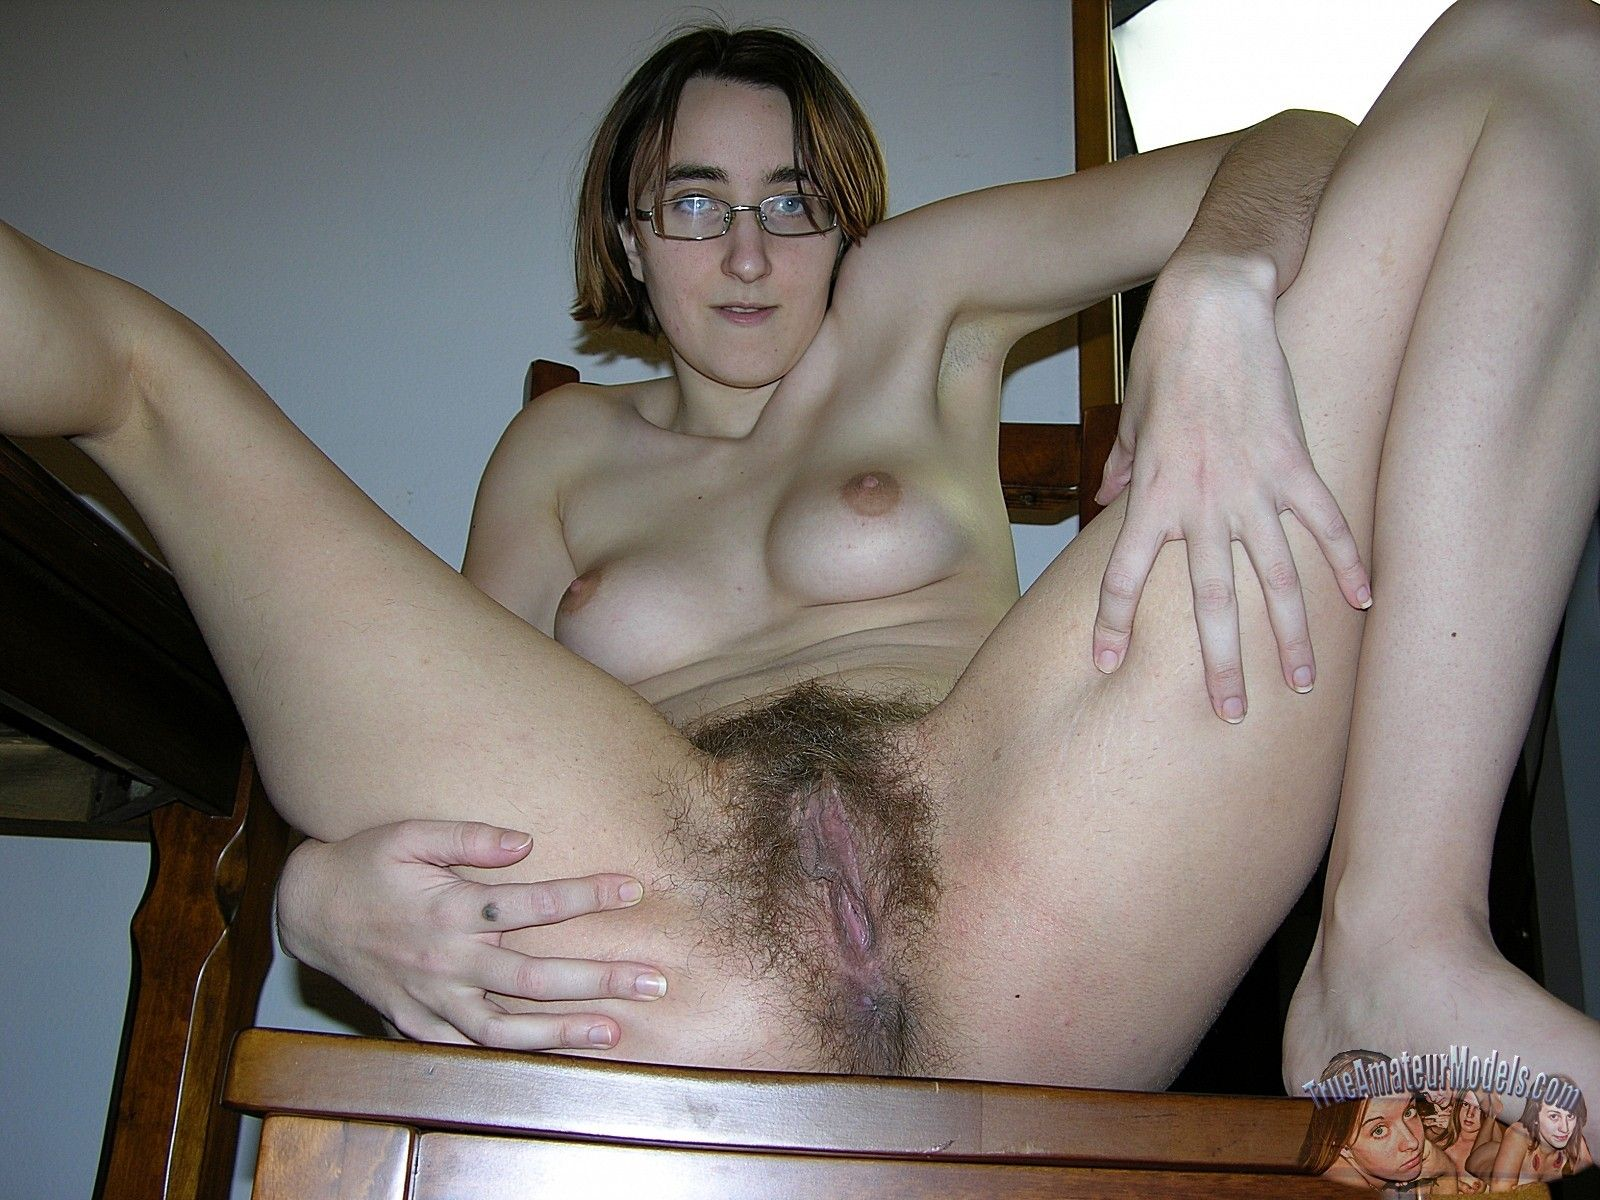 from Aaron mature geeky girls porn